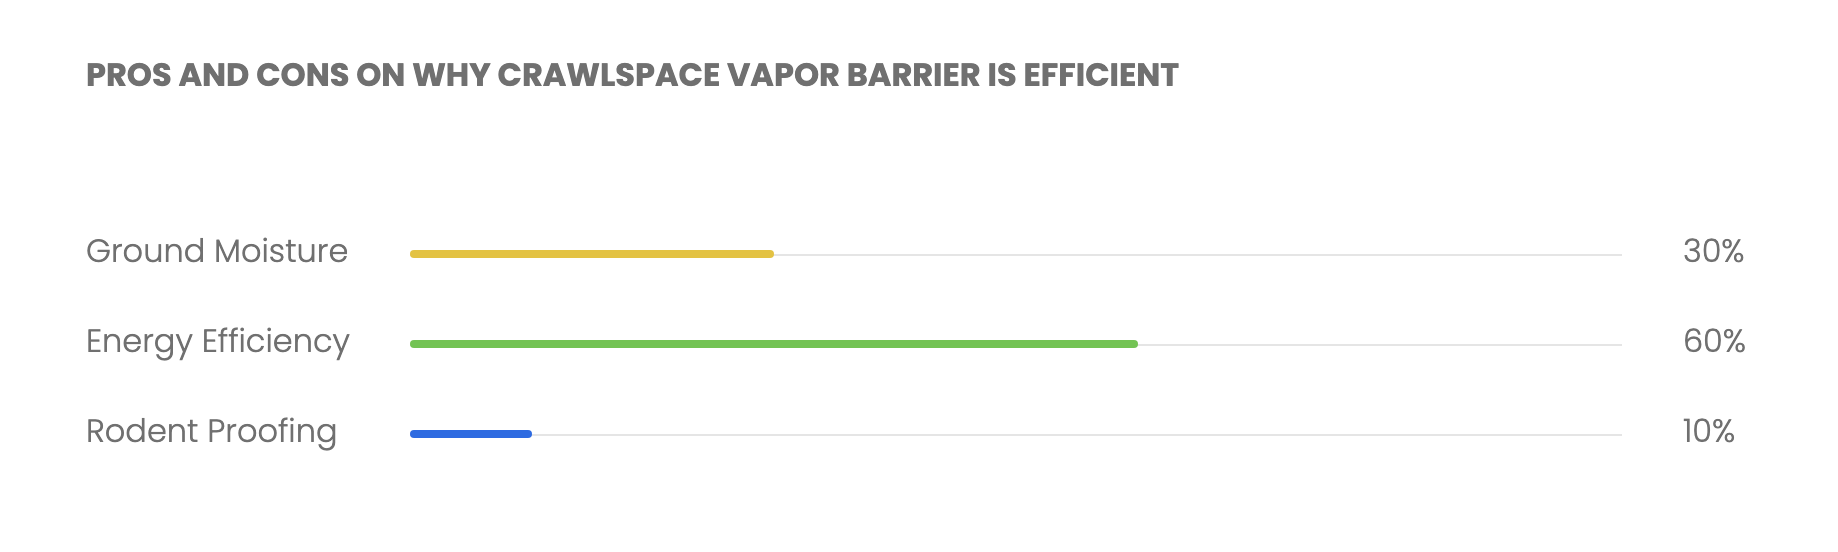 PROS AND CONS ON WHY CRAWLSPACE VAPOR BARRIER IS EFFICIENT